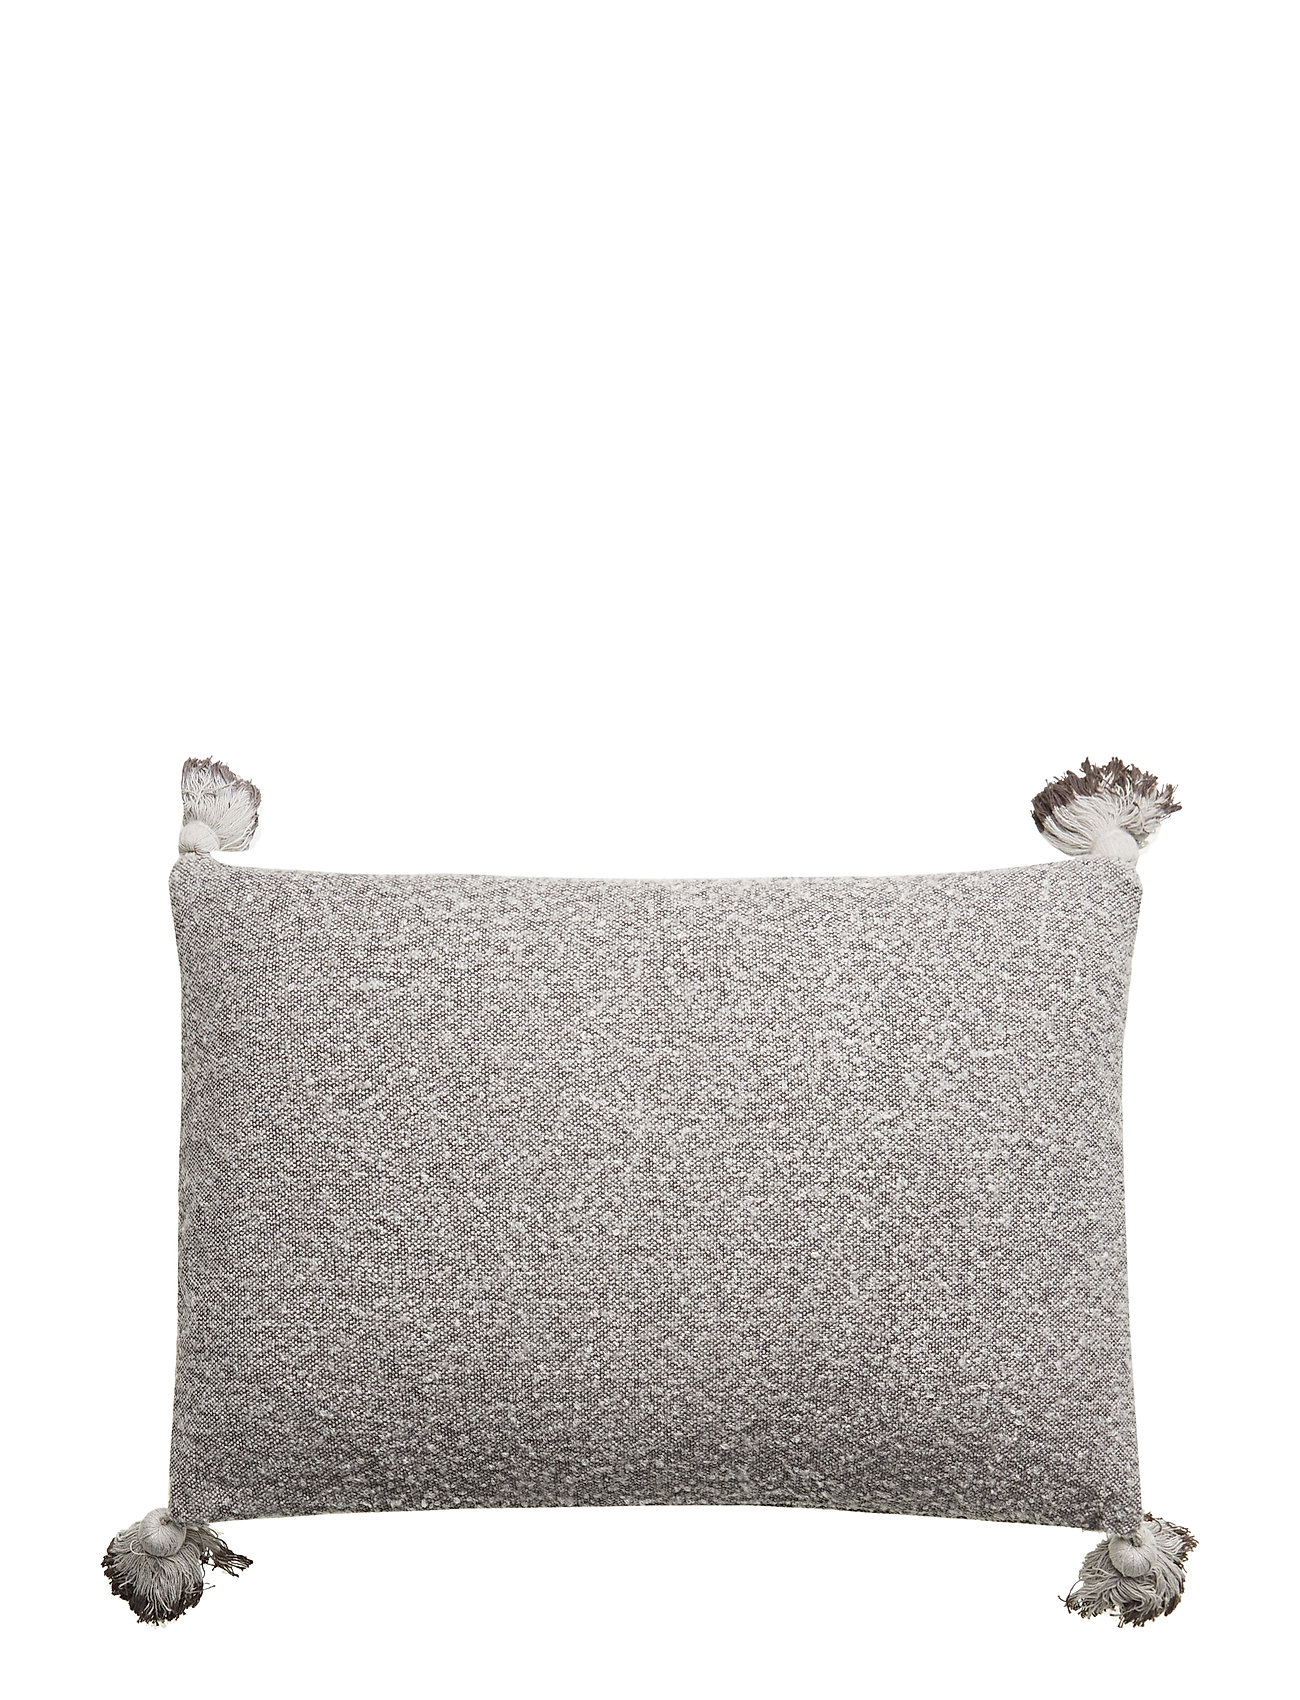 Bloomingville Cushion, Grey, Acrylic - GREY